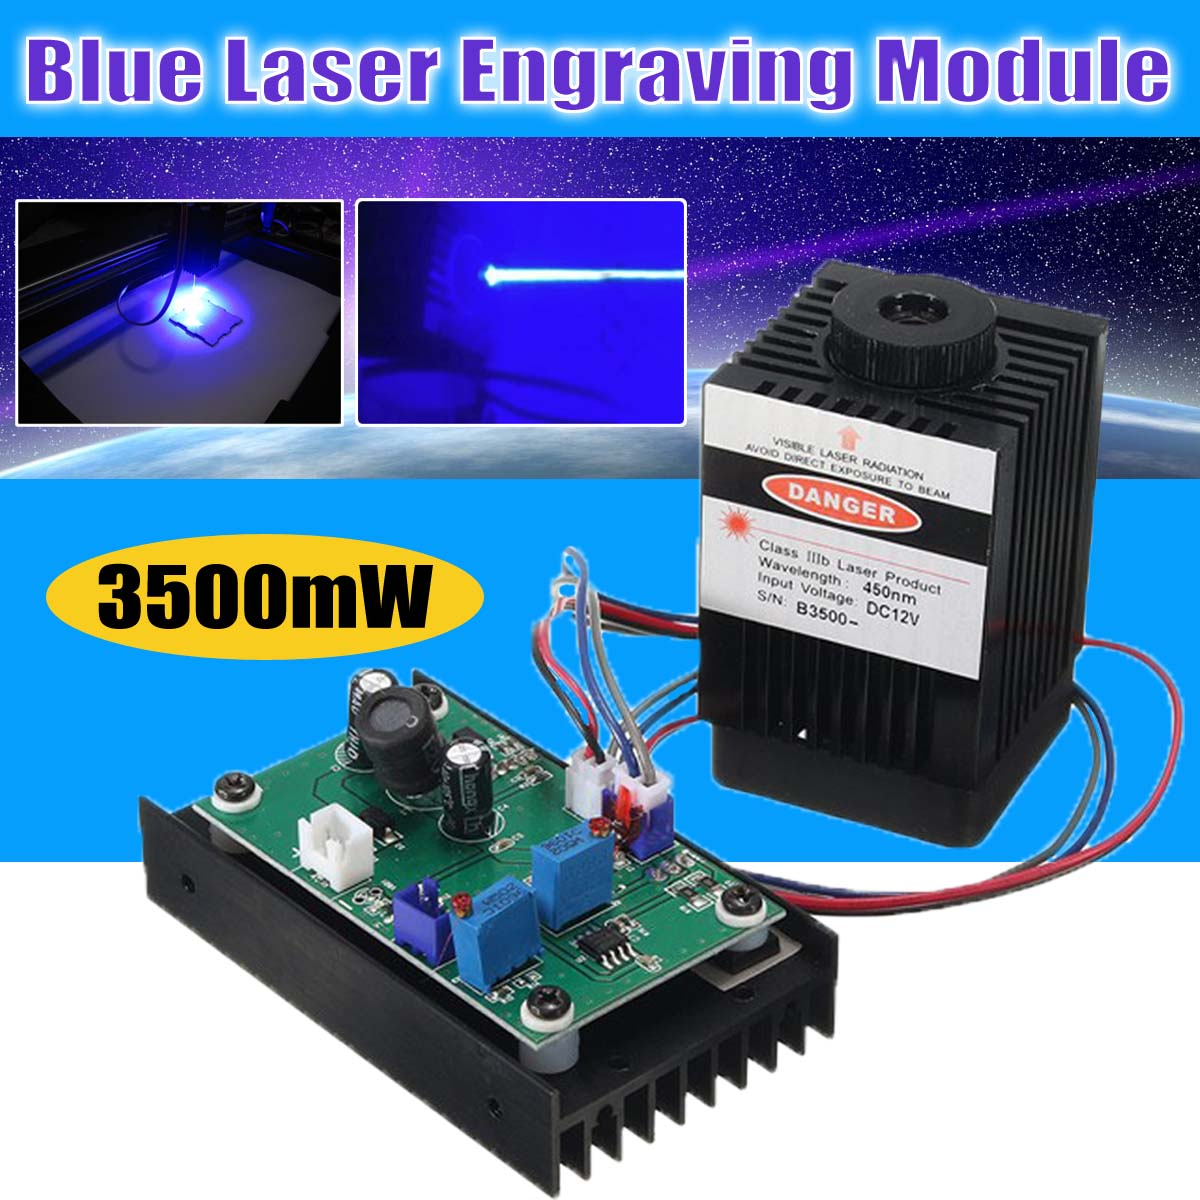 3500mw Blue Laser Module High Power 3.5W Laser Head DIY Metal Engraving 450nm for DIY Laser Engraving Cutting Machine dhlship high power diy laser engrave module engraving laser module blue light 450nm diy steel mark 10000mw 10w blue laser module